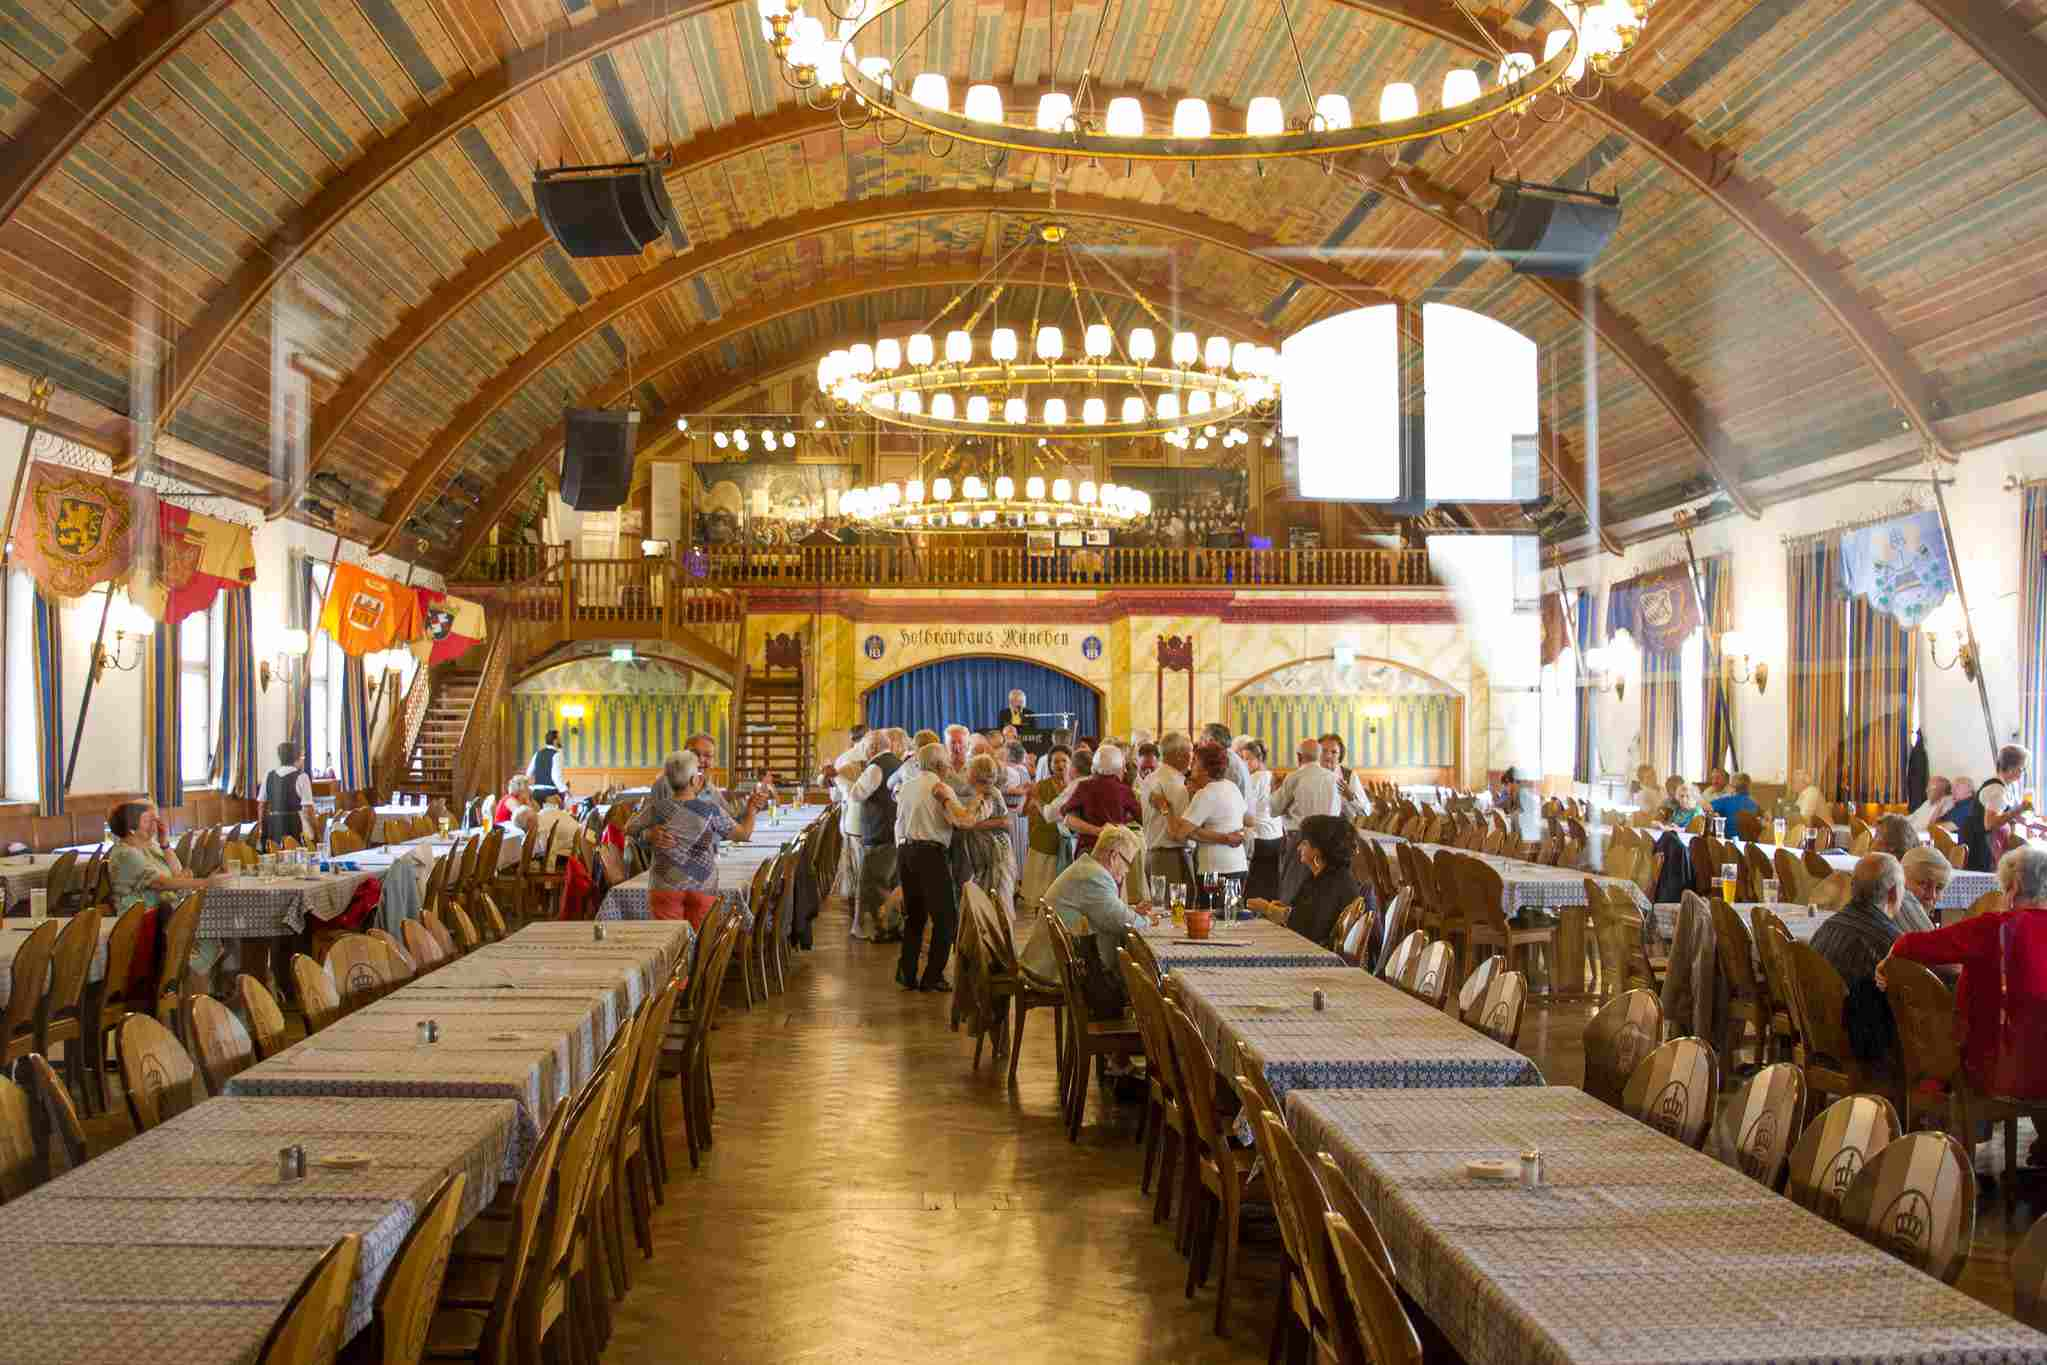 Tables lined up at the Hofbräuhaus in Munich, Germany.